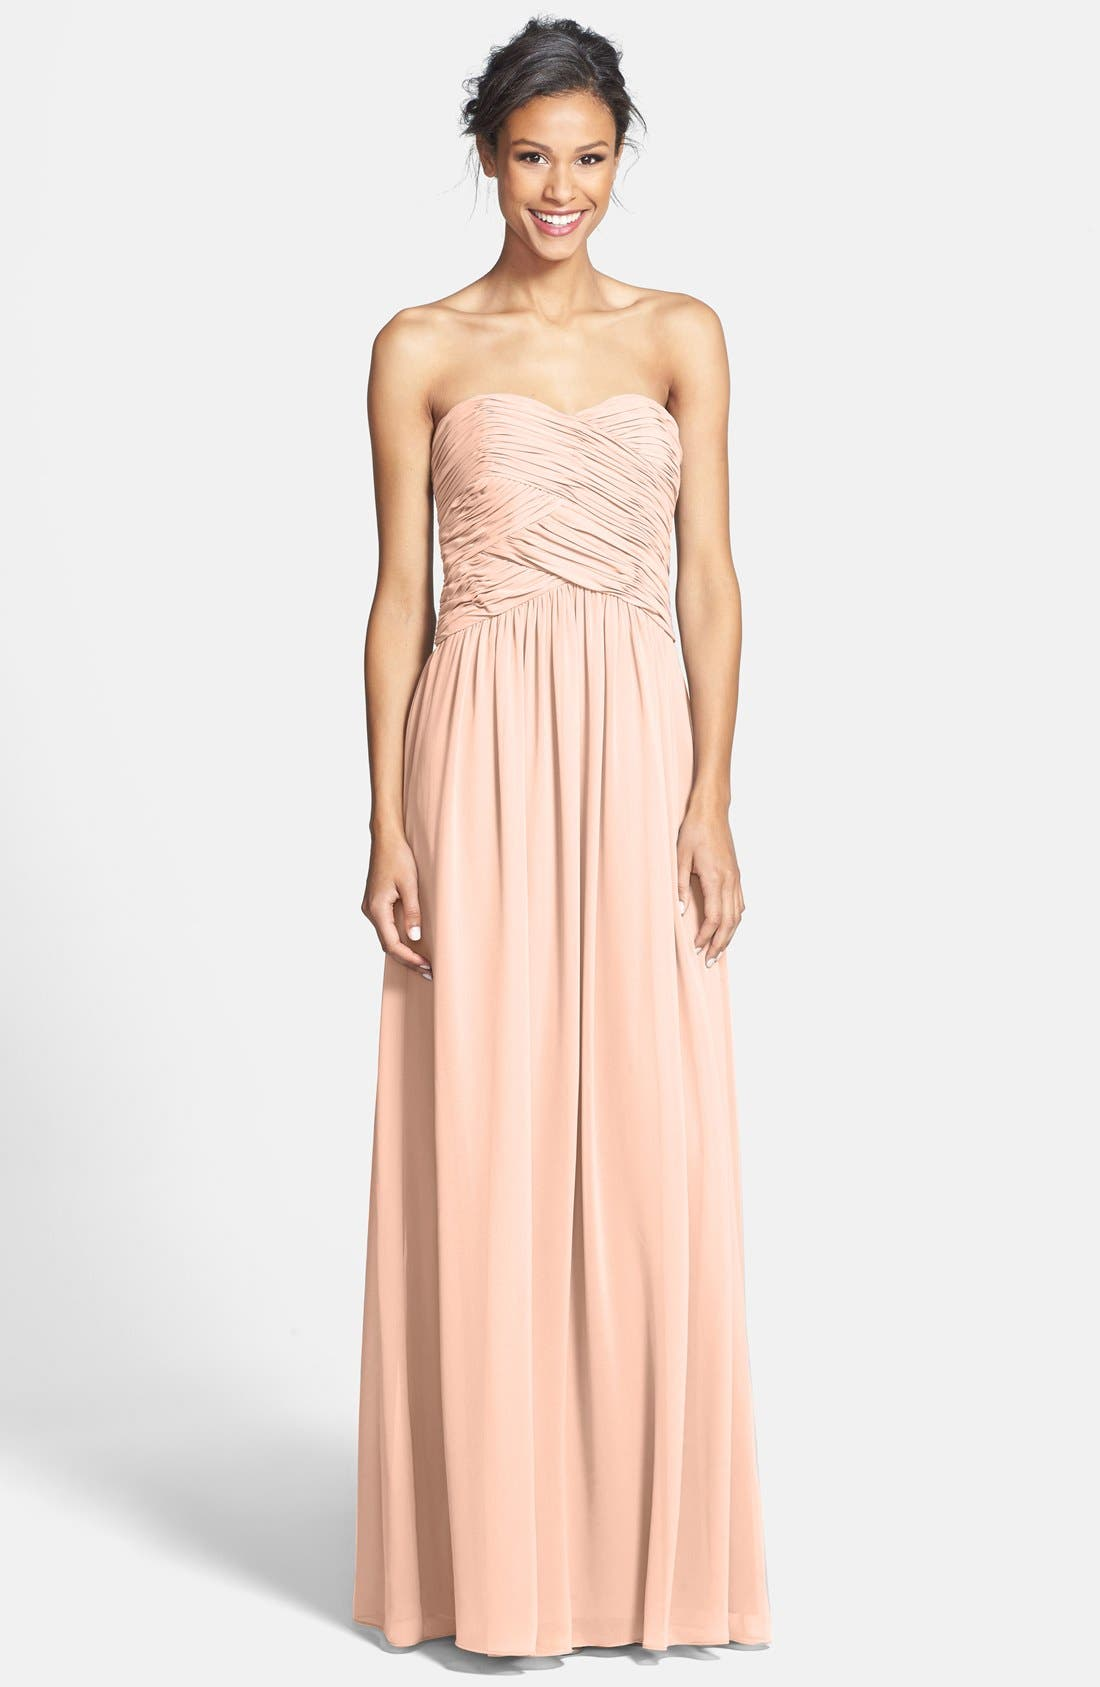 Alternate Image 1 Selected - Donna Morgan 'Audrey' Strapless Chiffon Gown